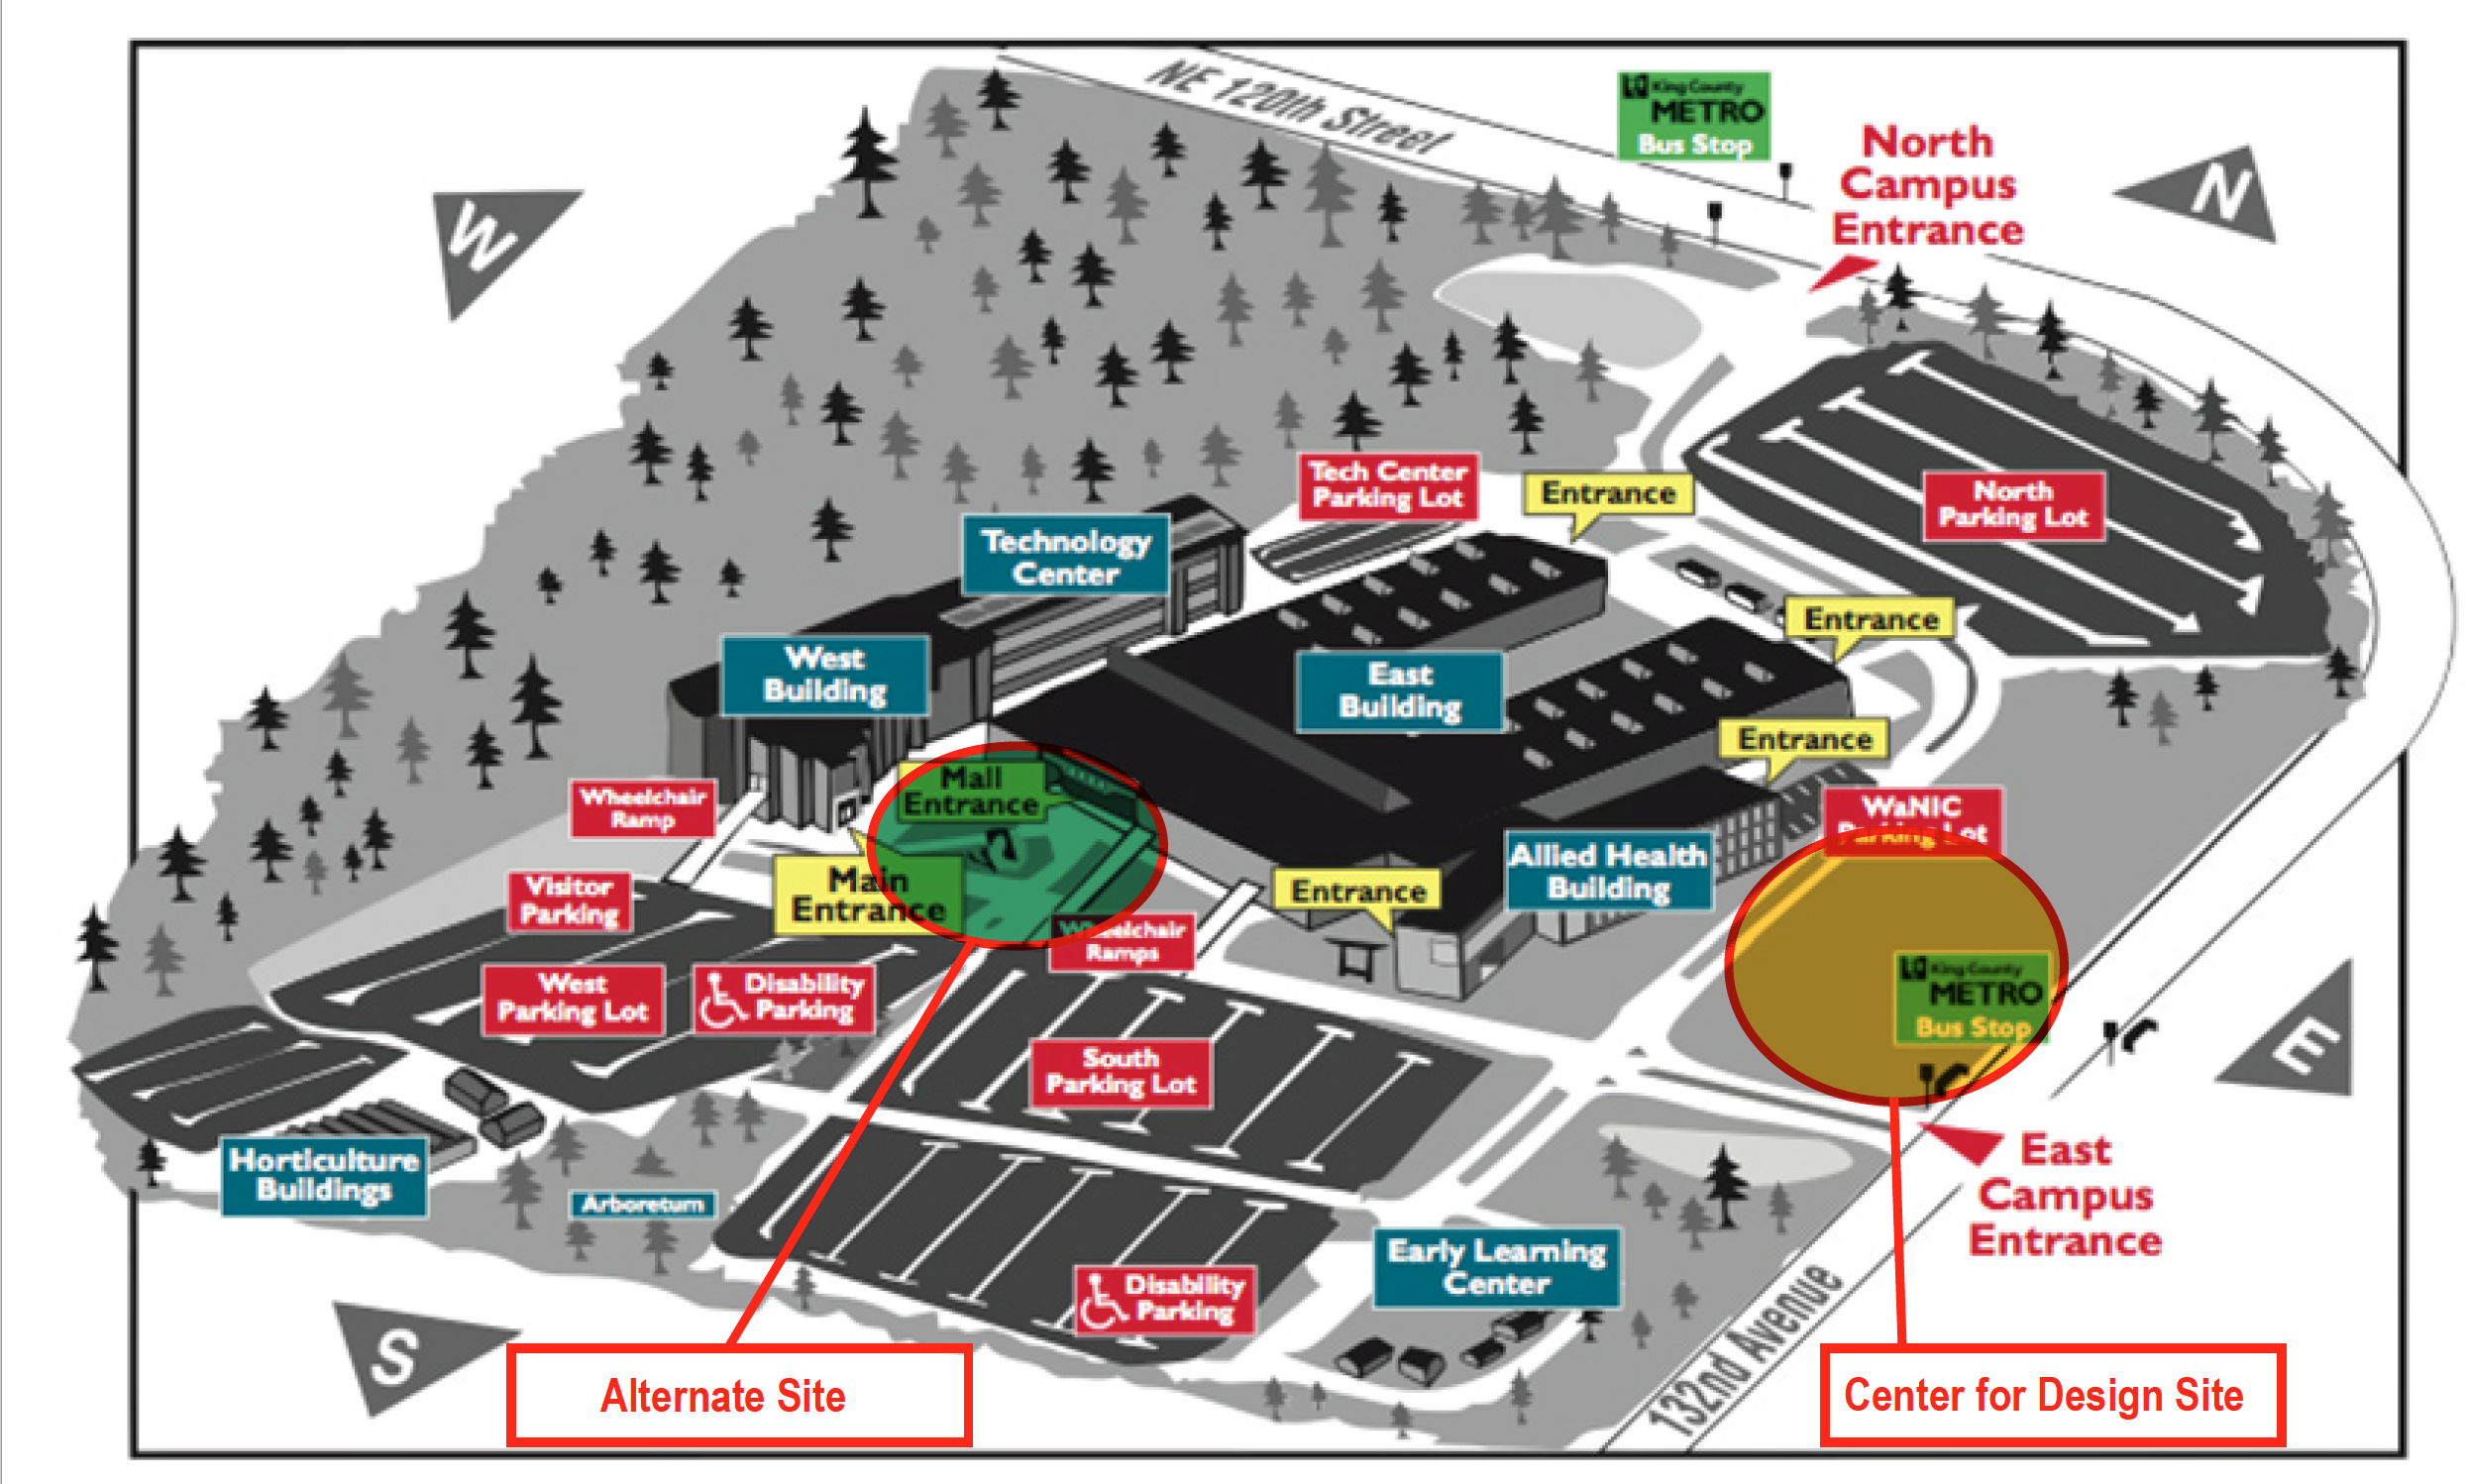 Center for Design Location on Campus Map